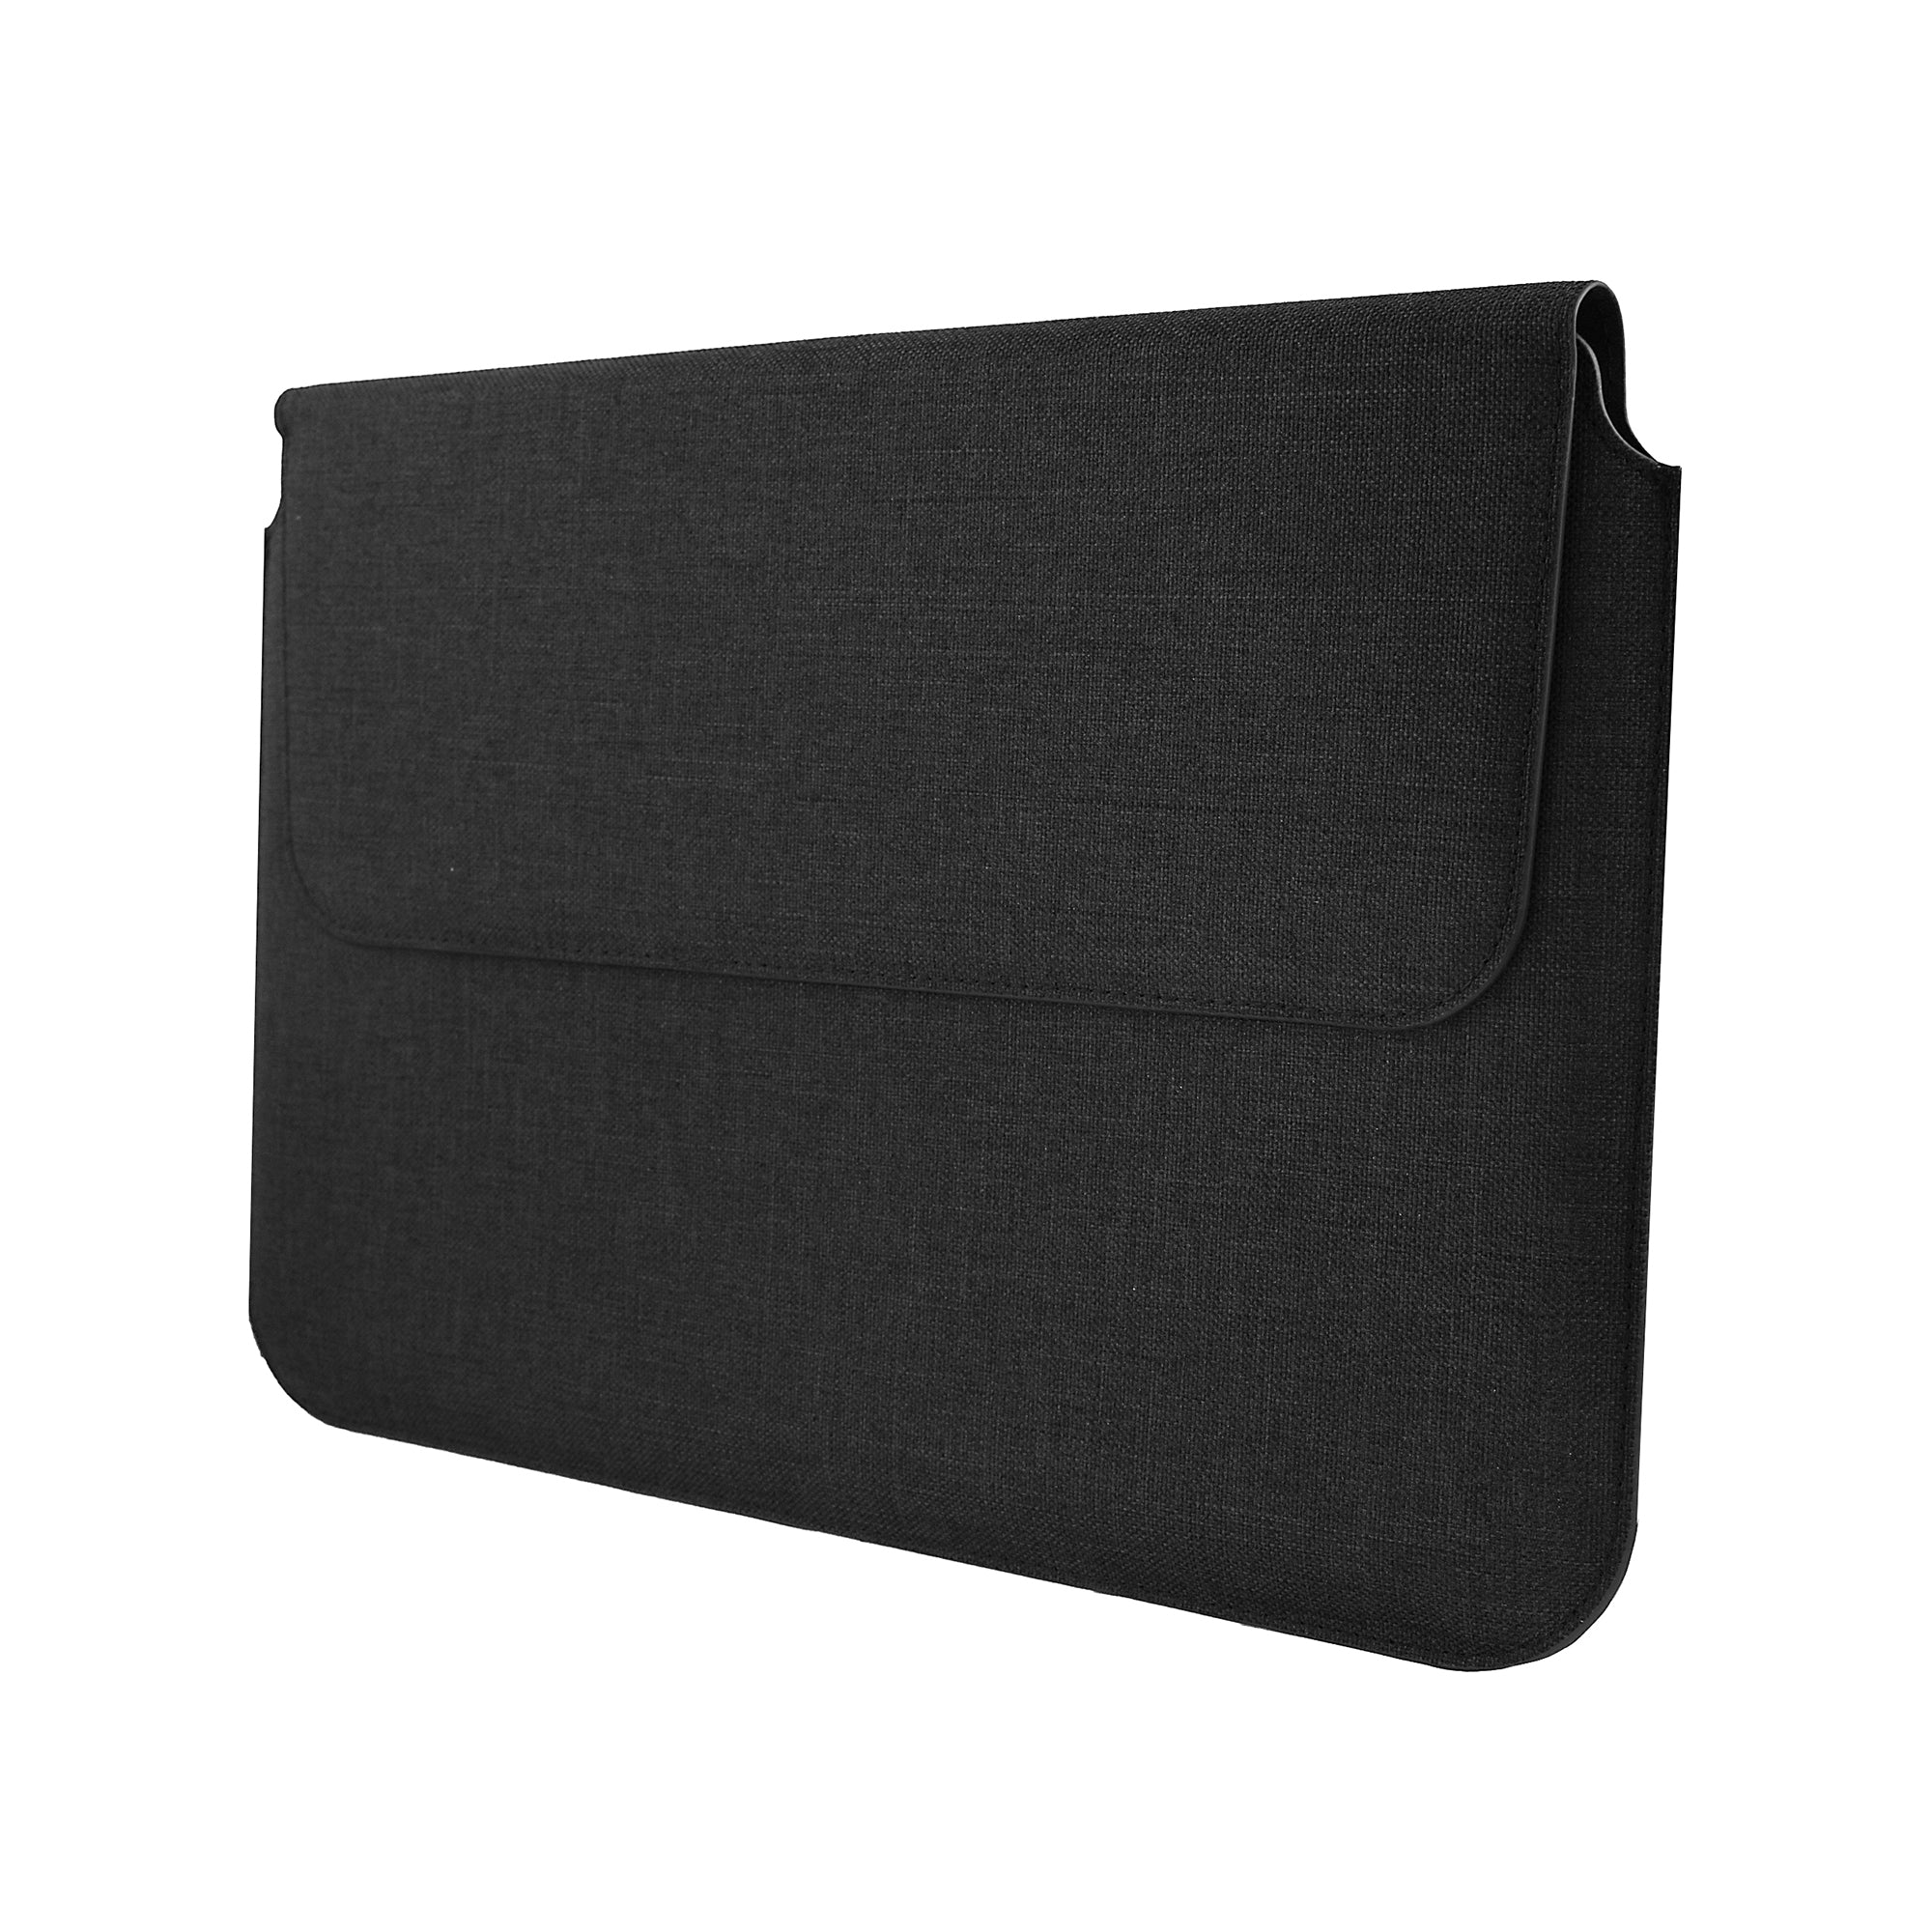 Universal Magnetic Sleeve - Dark Grey Textured